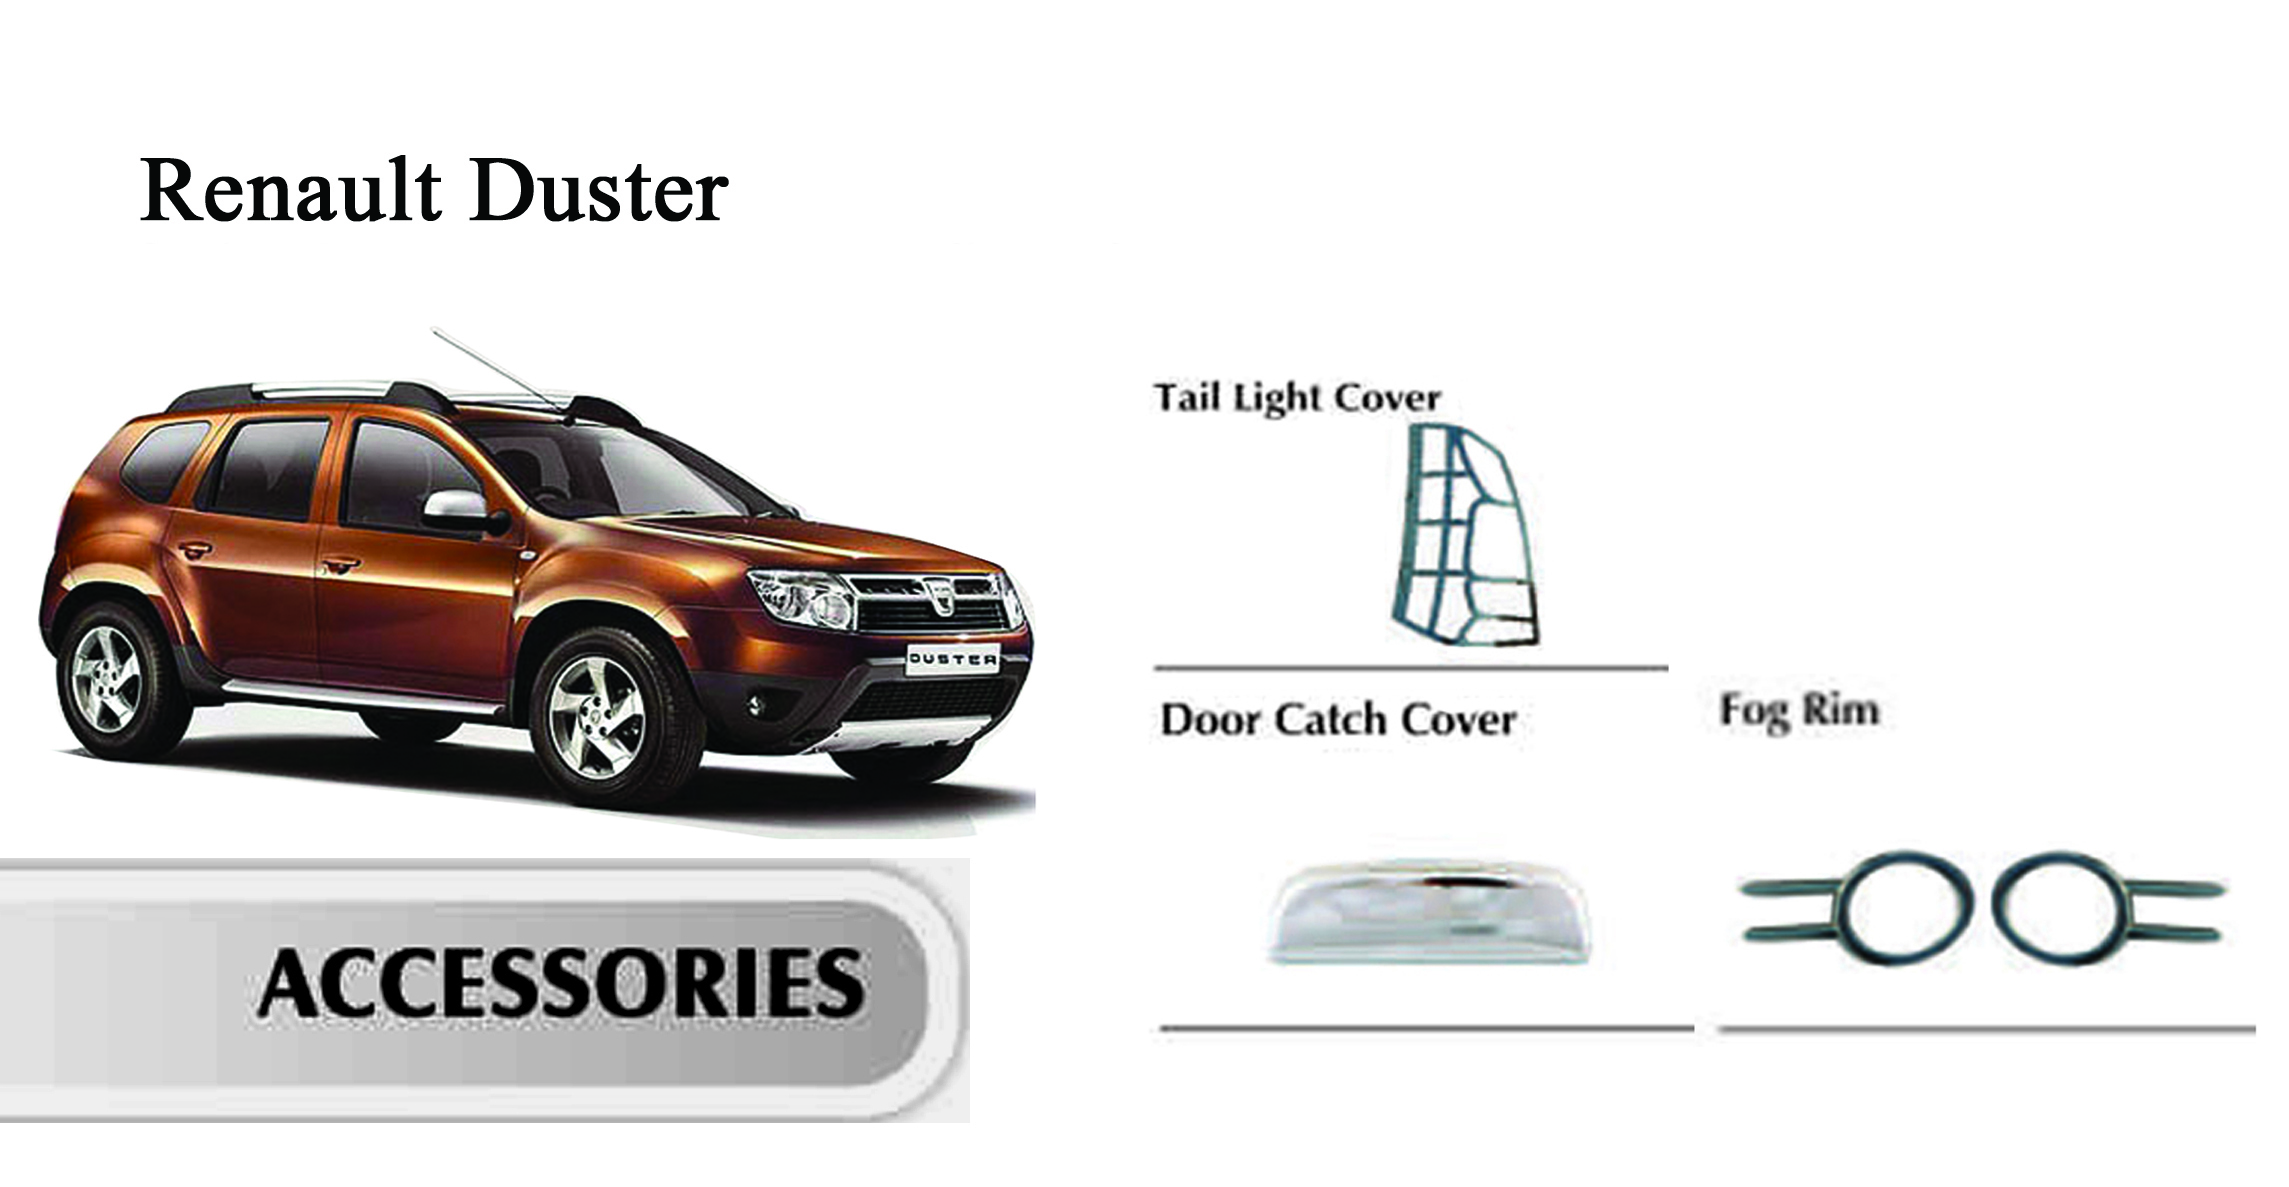 chrome plated premium quality combo kit for renault duster. Black Bedroom Furniture Sets. Home Design Ideas